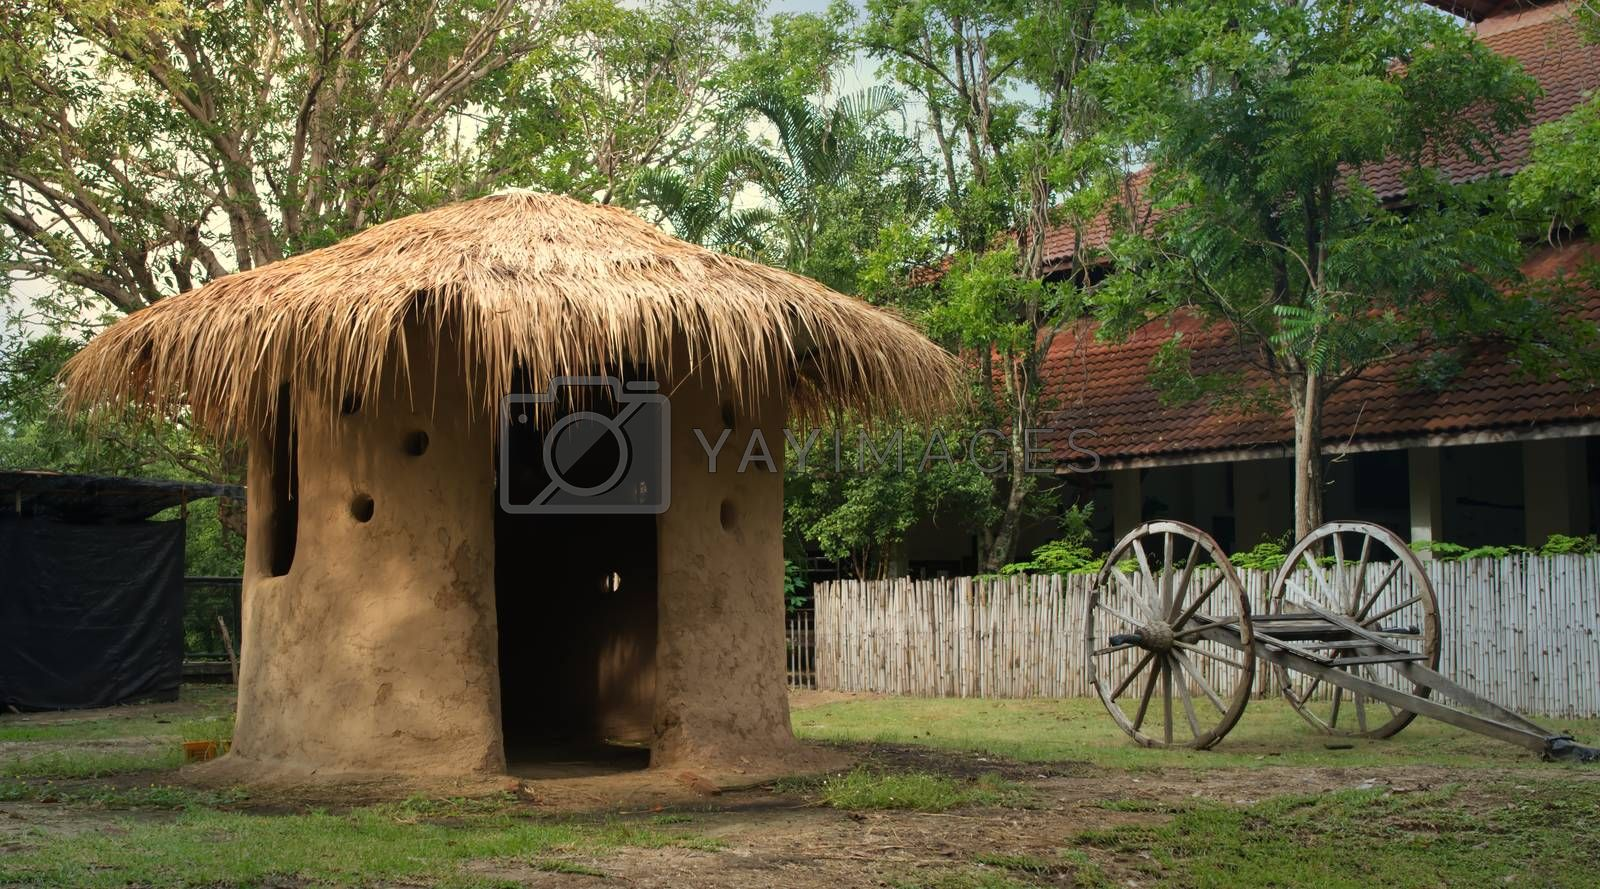 A small thatched-roof mud house common in Thailand.